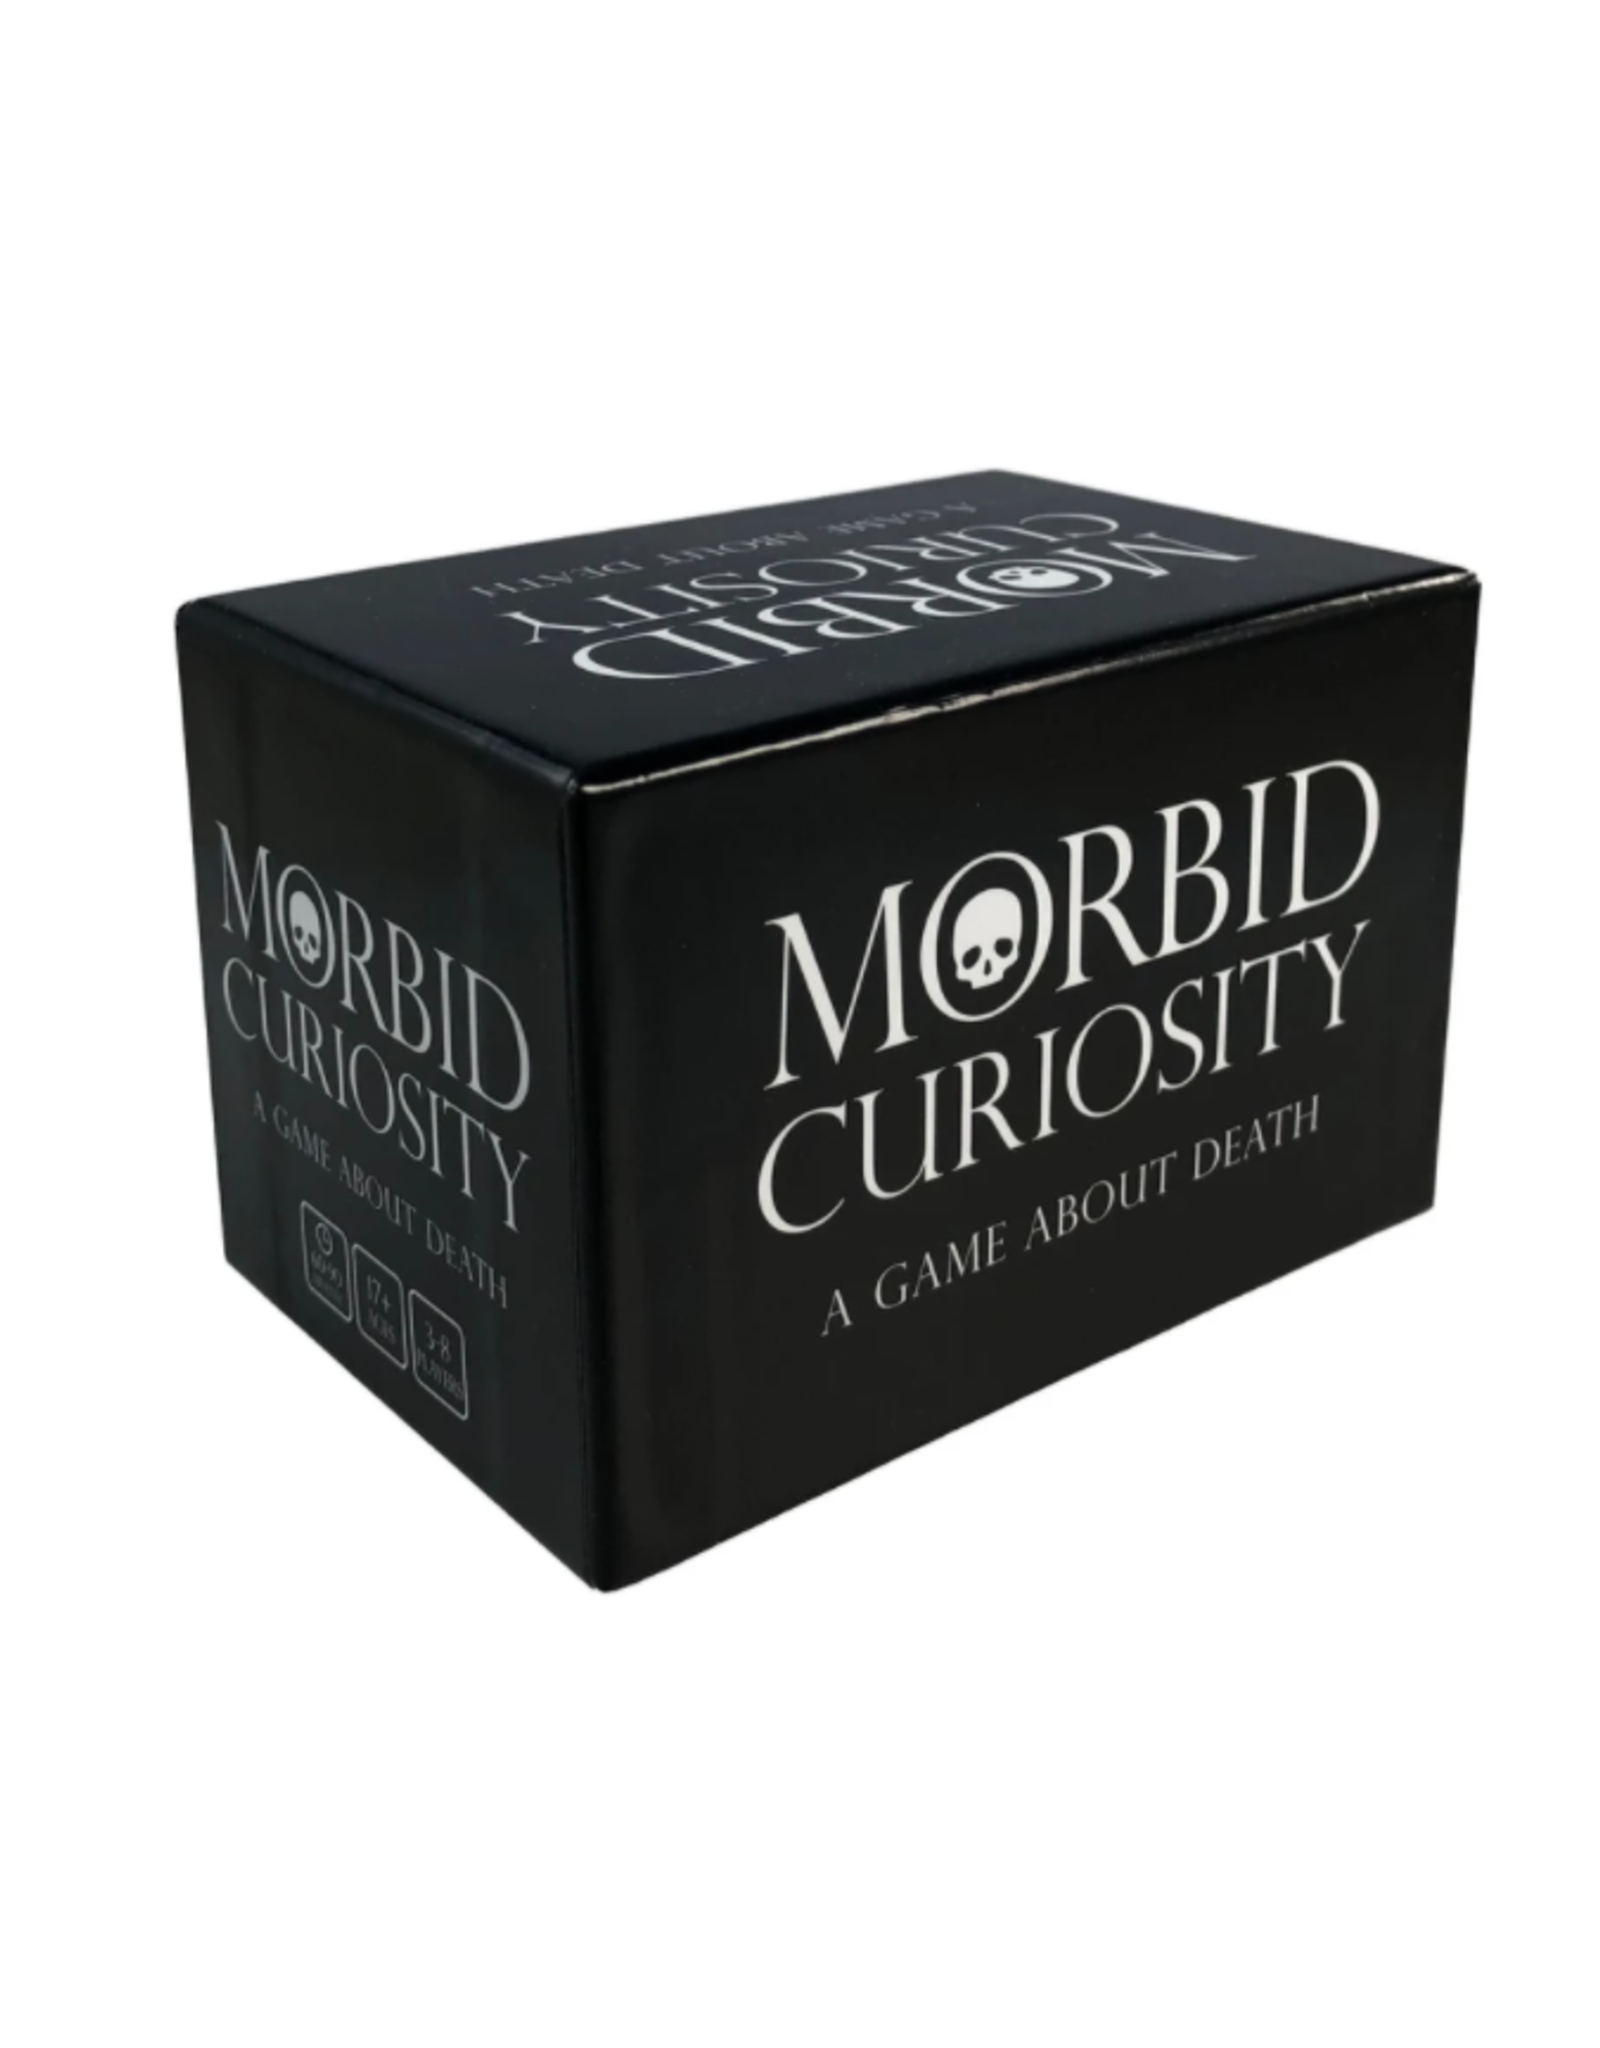 Morbid Curiosity: A Game About Death